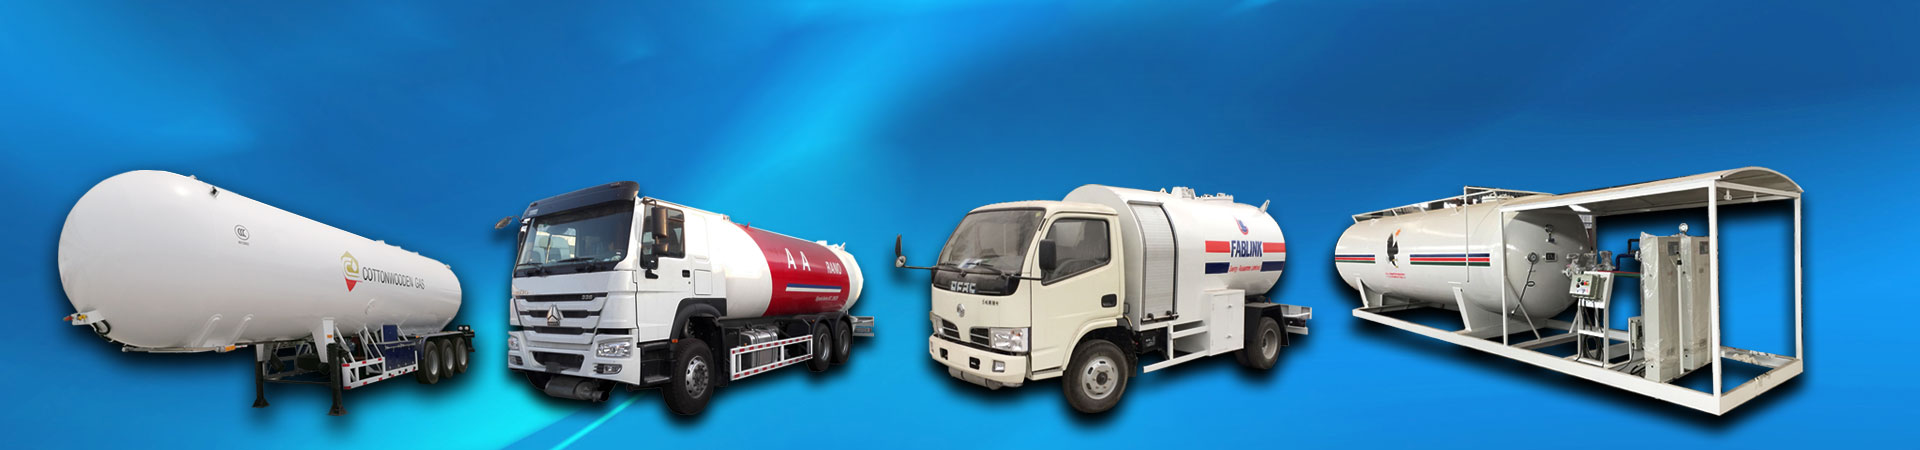 Reliable Manufacturer for LPG Tank Products